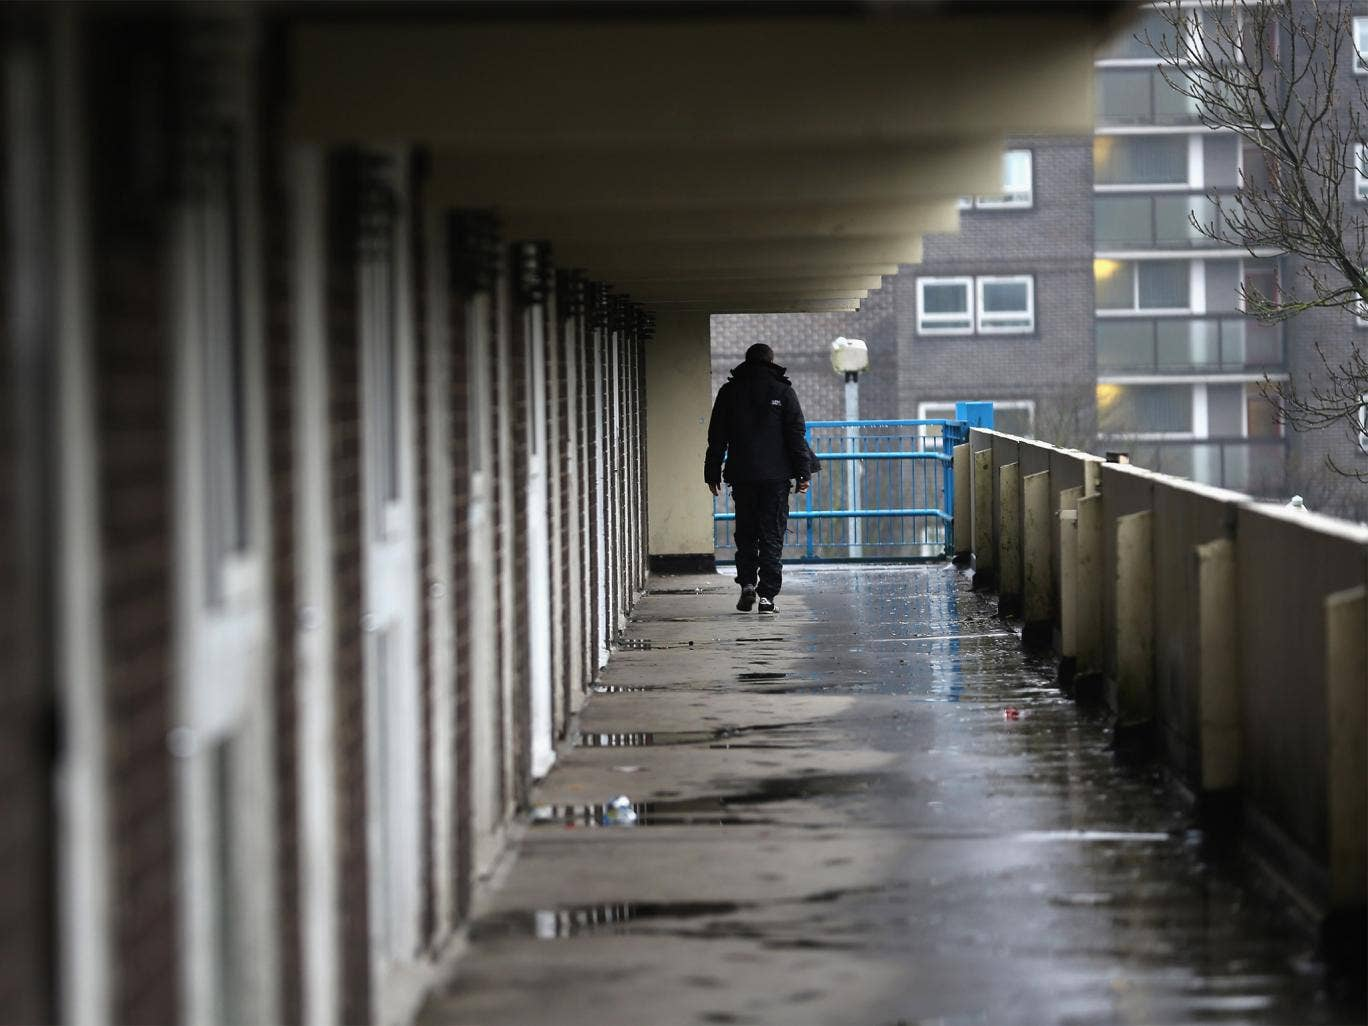 The survey found that  18 million people cannot afford adequate housing